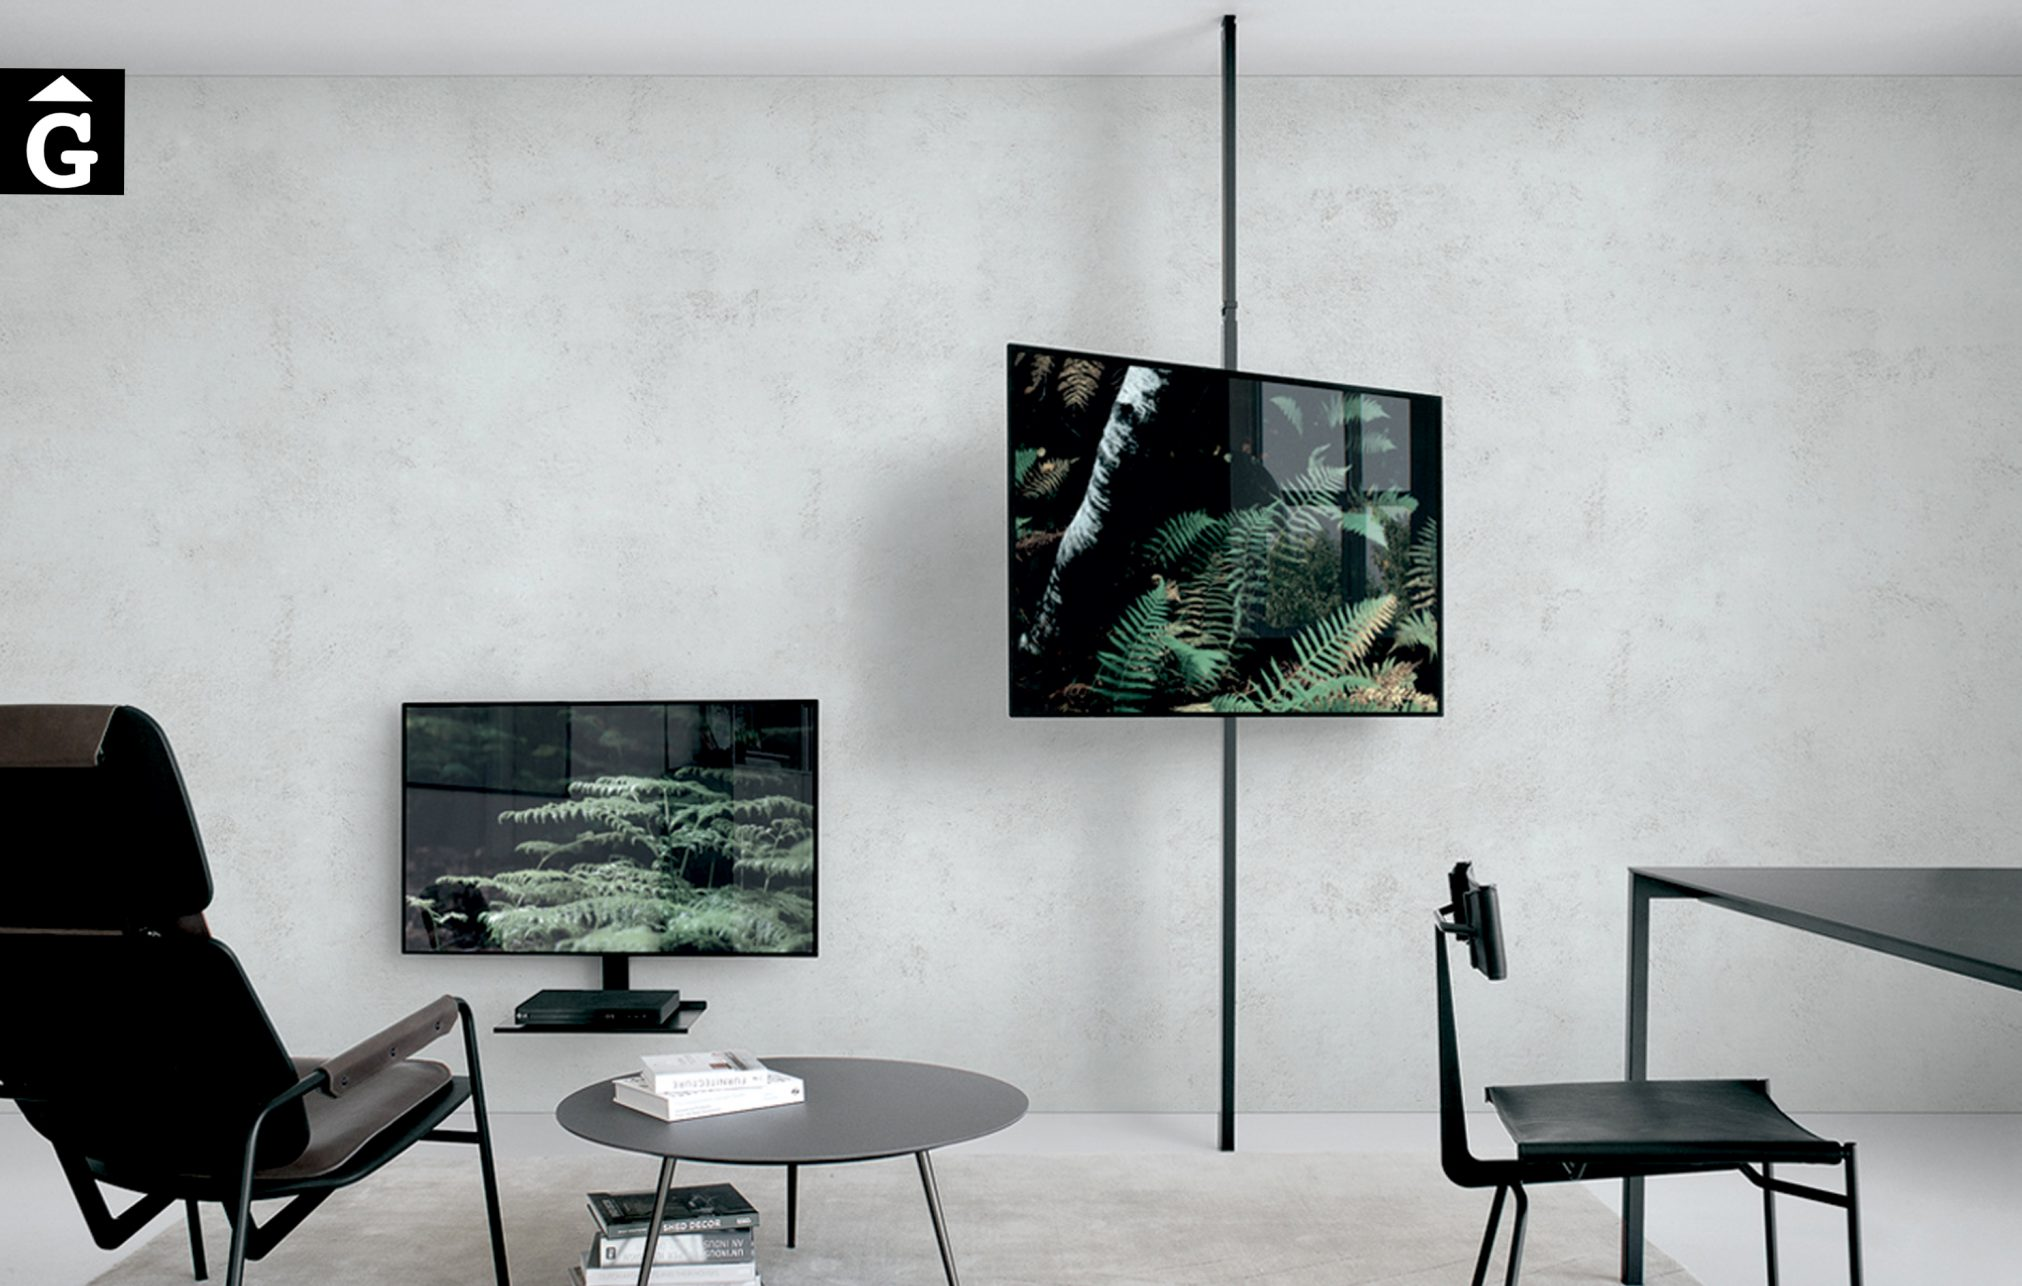 Suports moble Tv Extendo Design Source by mobles Gifreu botiga elements interiors